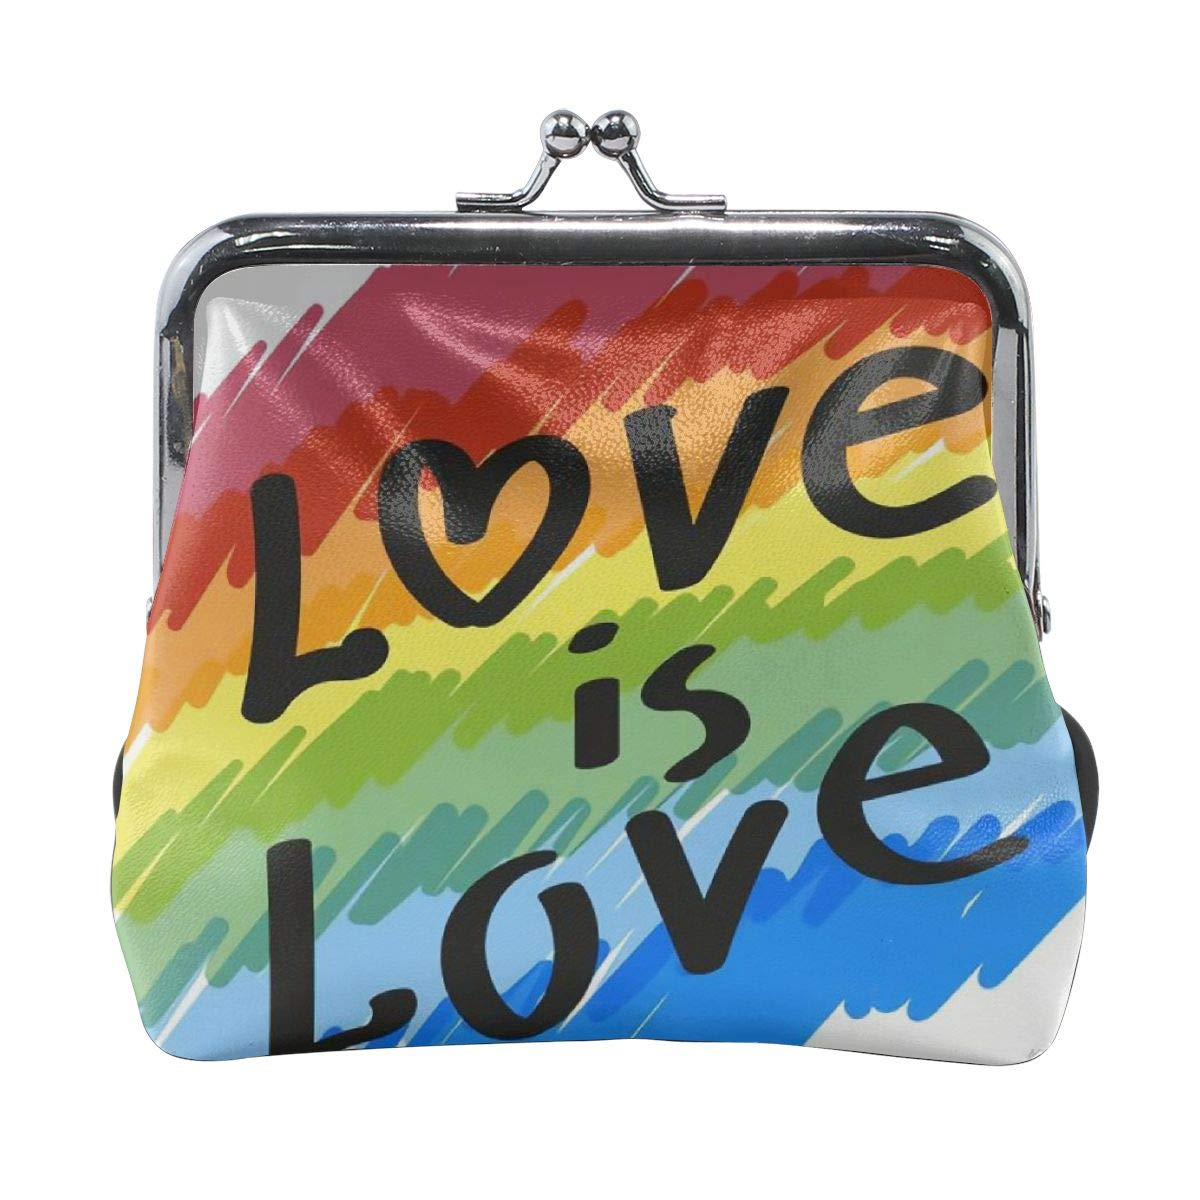 Rainbow Love Gay LGBT Graffiti Vintage Pouch Girl Kiss-lock Change Purse Wallets Buckle Leather Coin Purses Key Woman Printed